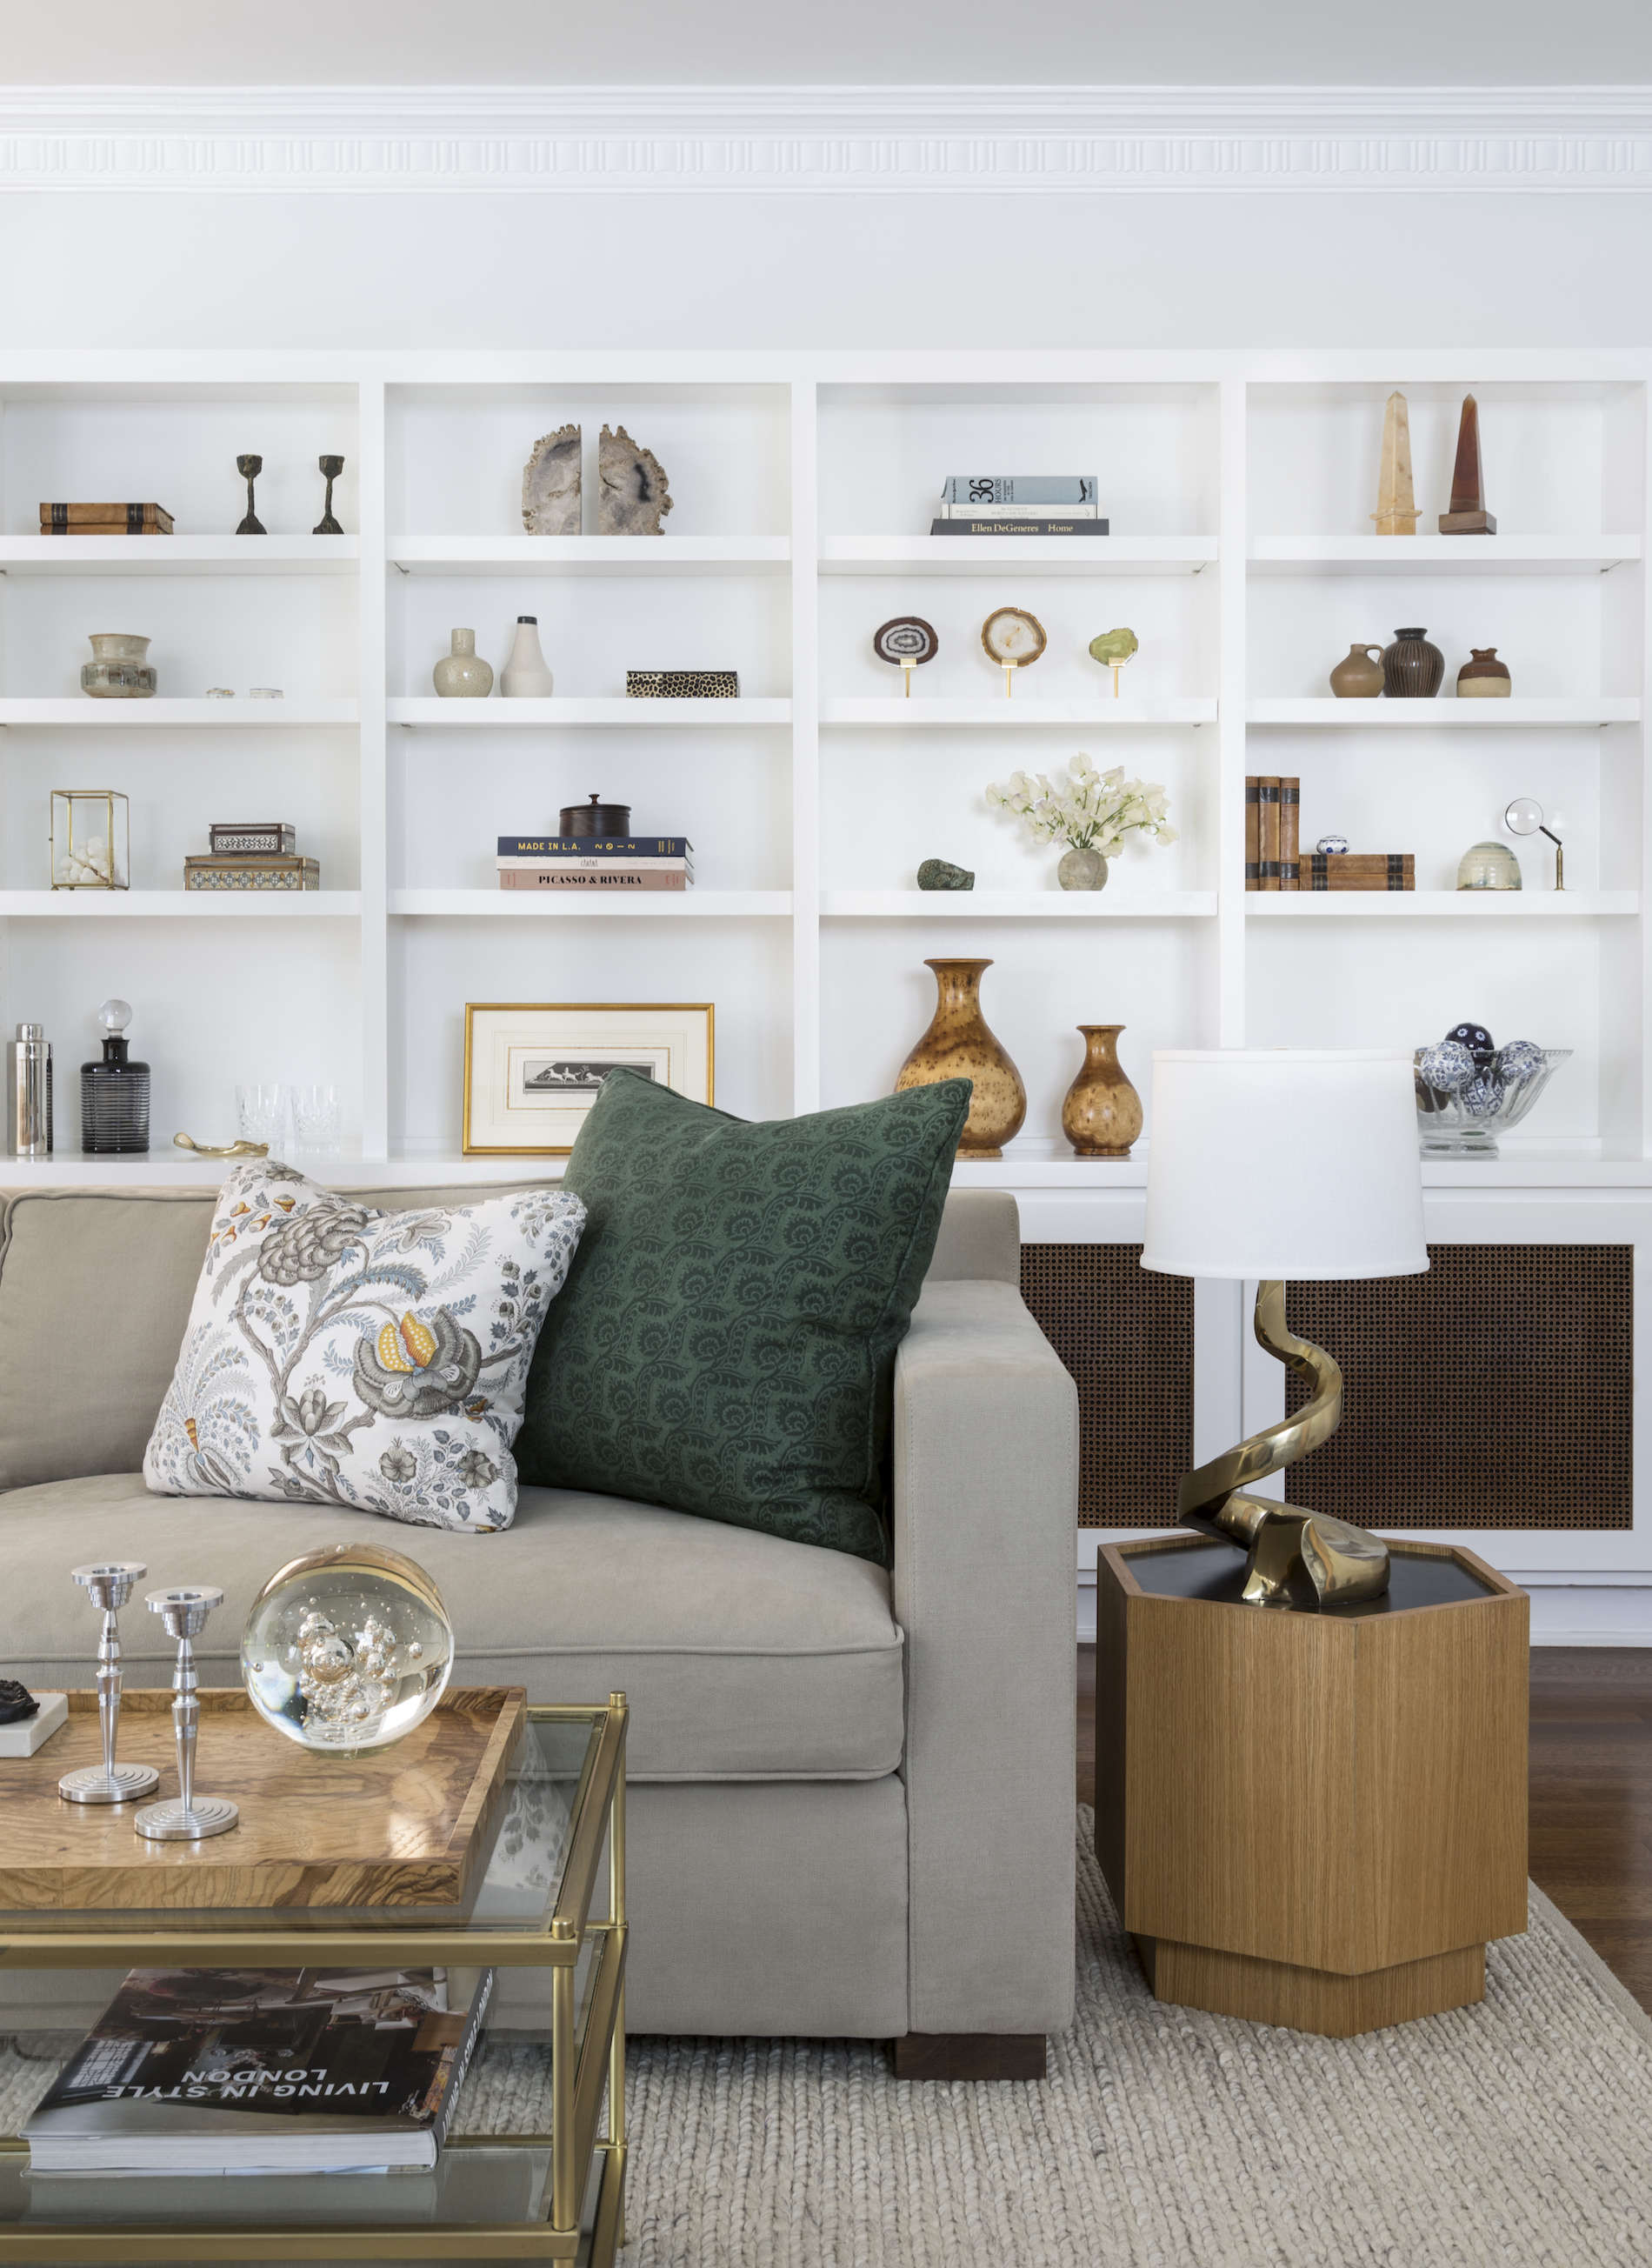 Inside a Los Angeles Home for a Young Couple - For this home, interior designer Stefani Stein of Stefani Stein Inc. was asked to create comfortable spaces with a neutral palette for a young couple expecting their first child.